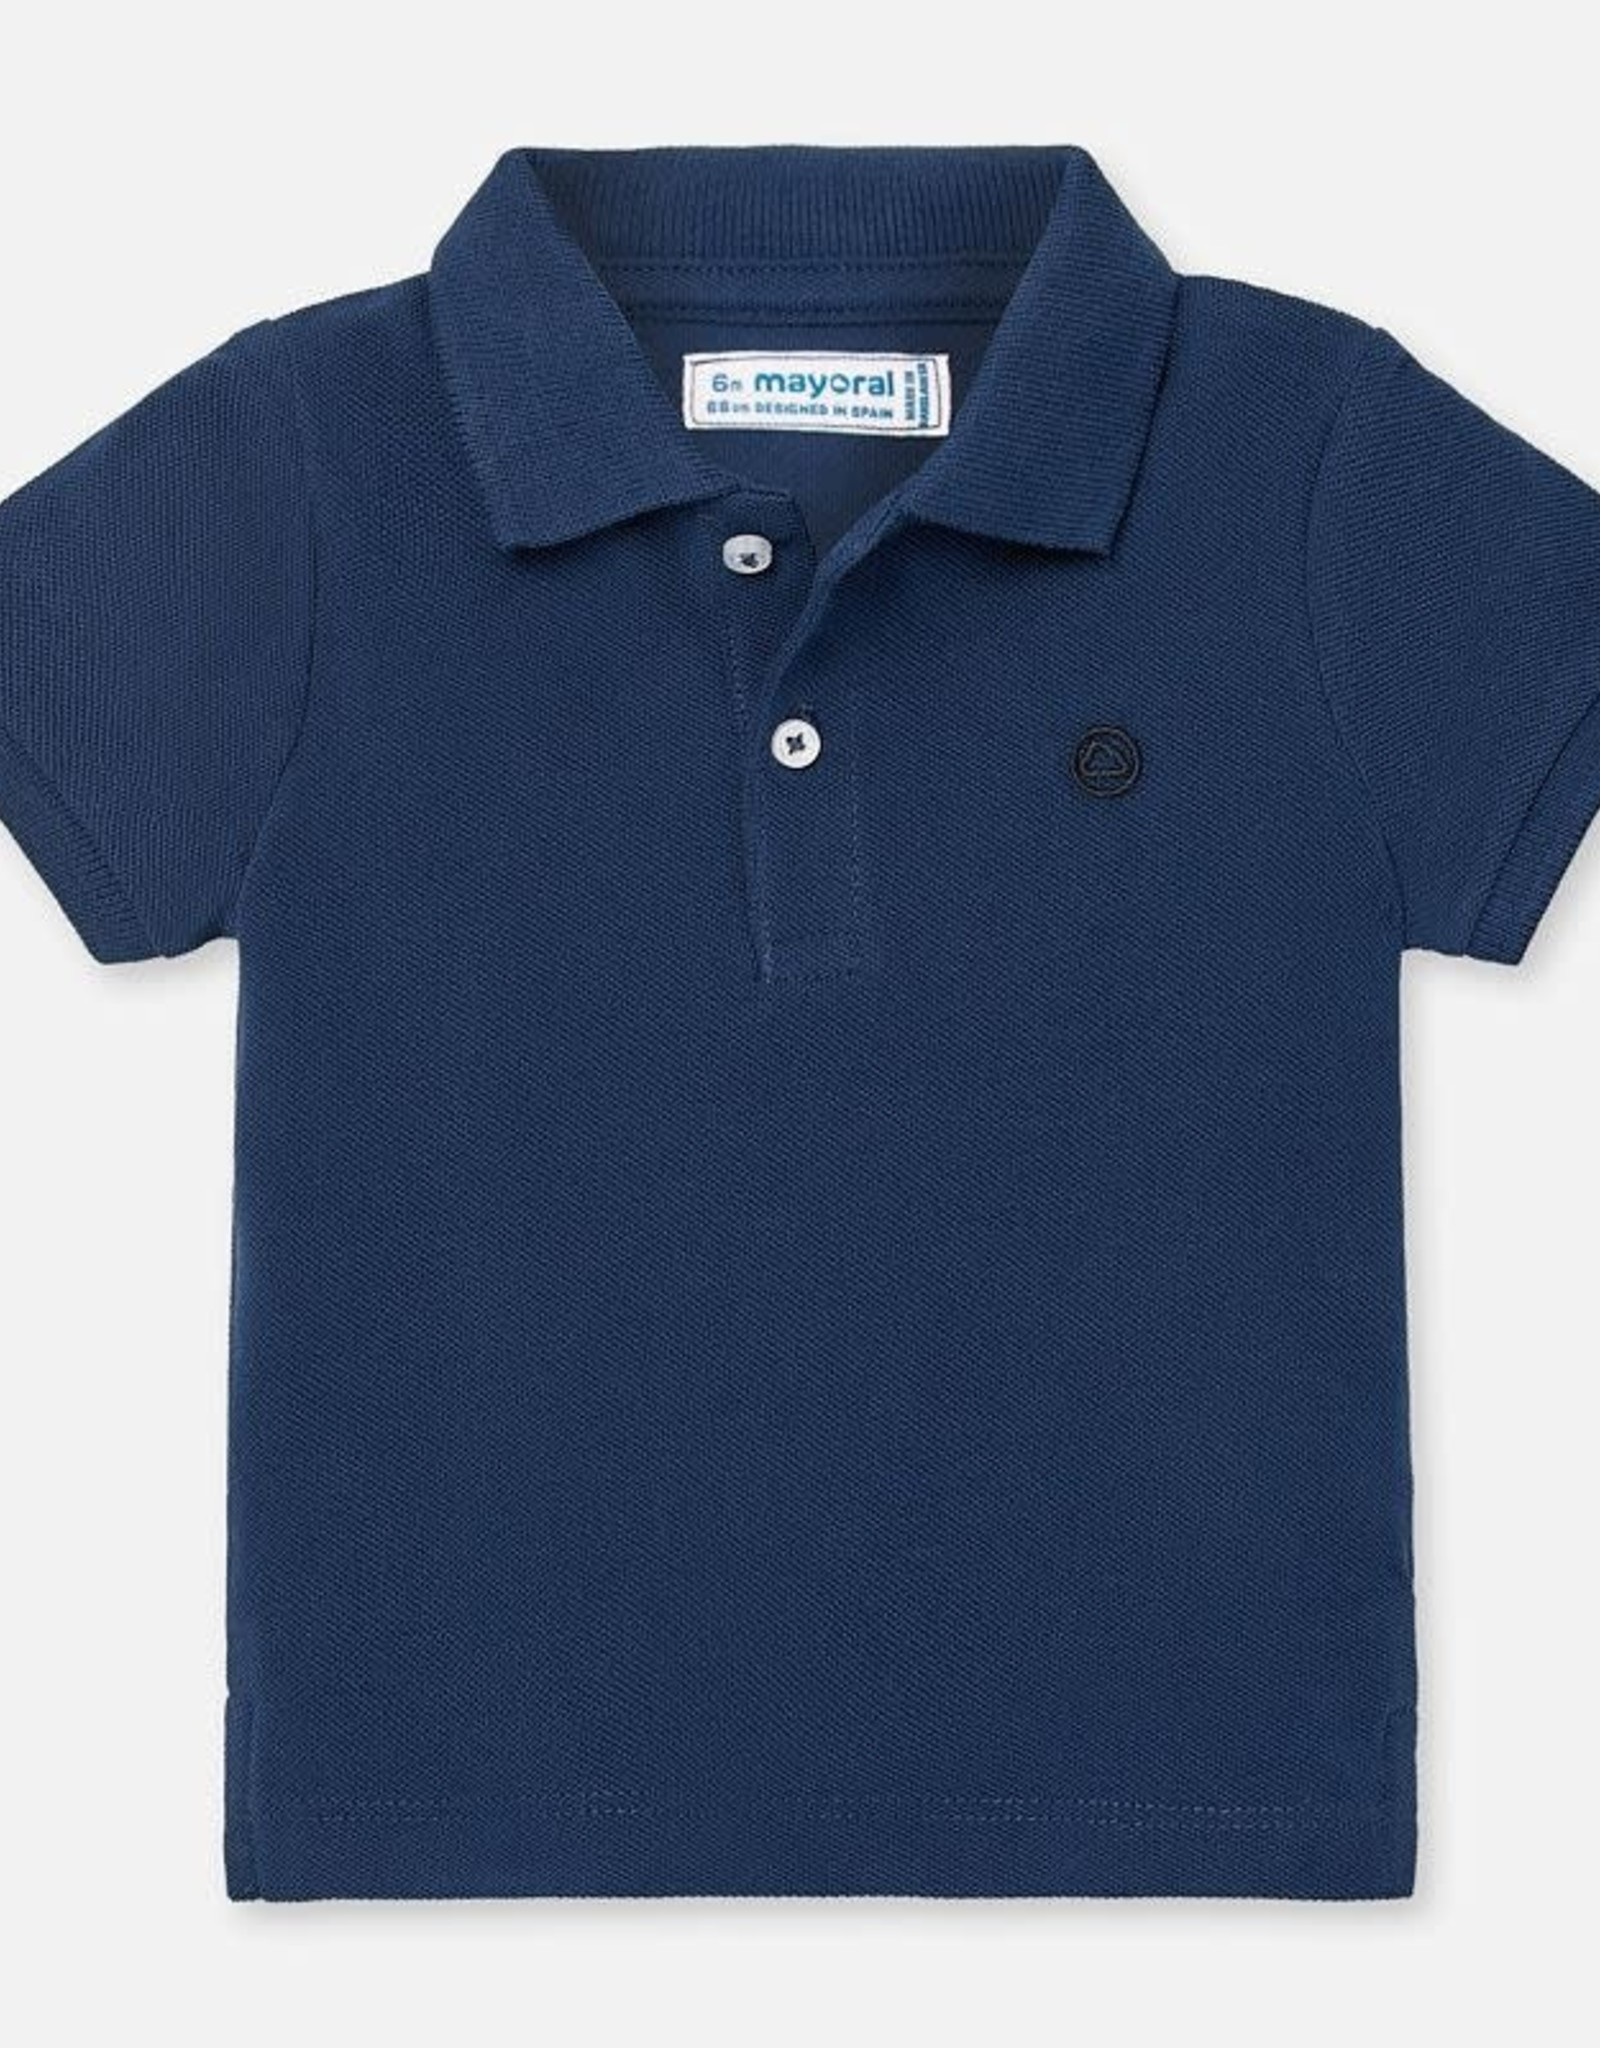 Mayoral Short Sleeve Polo Shirt in Navy